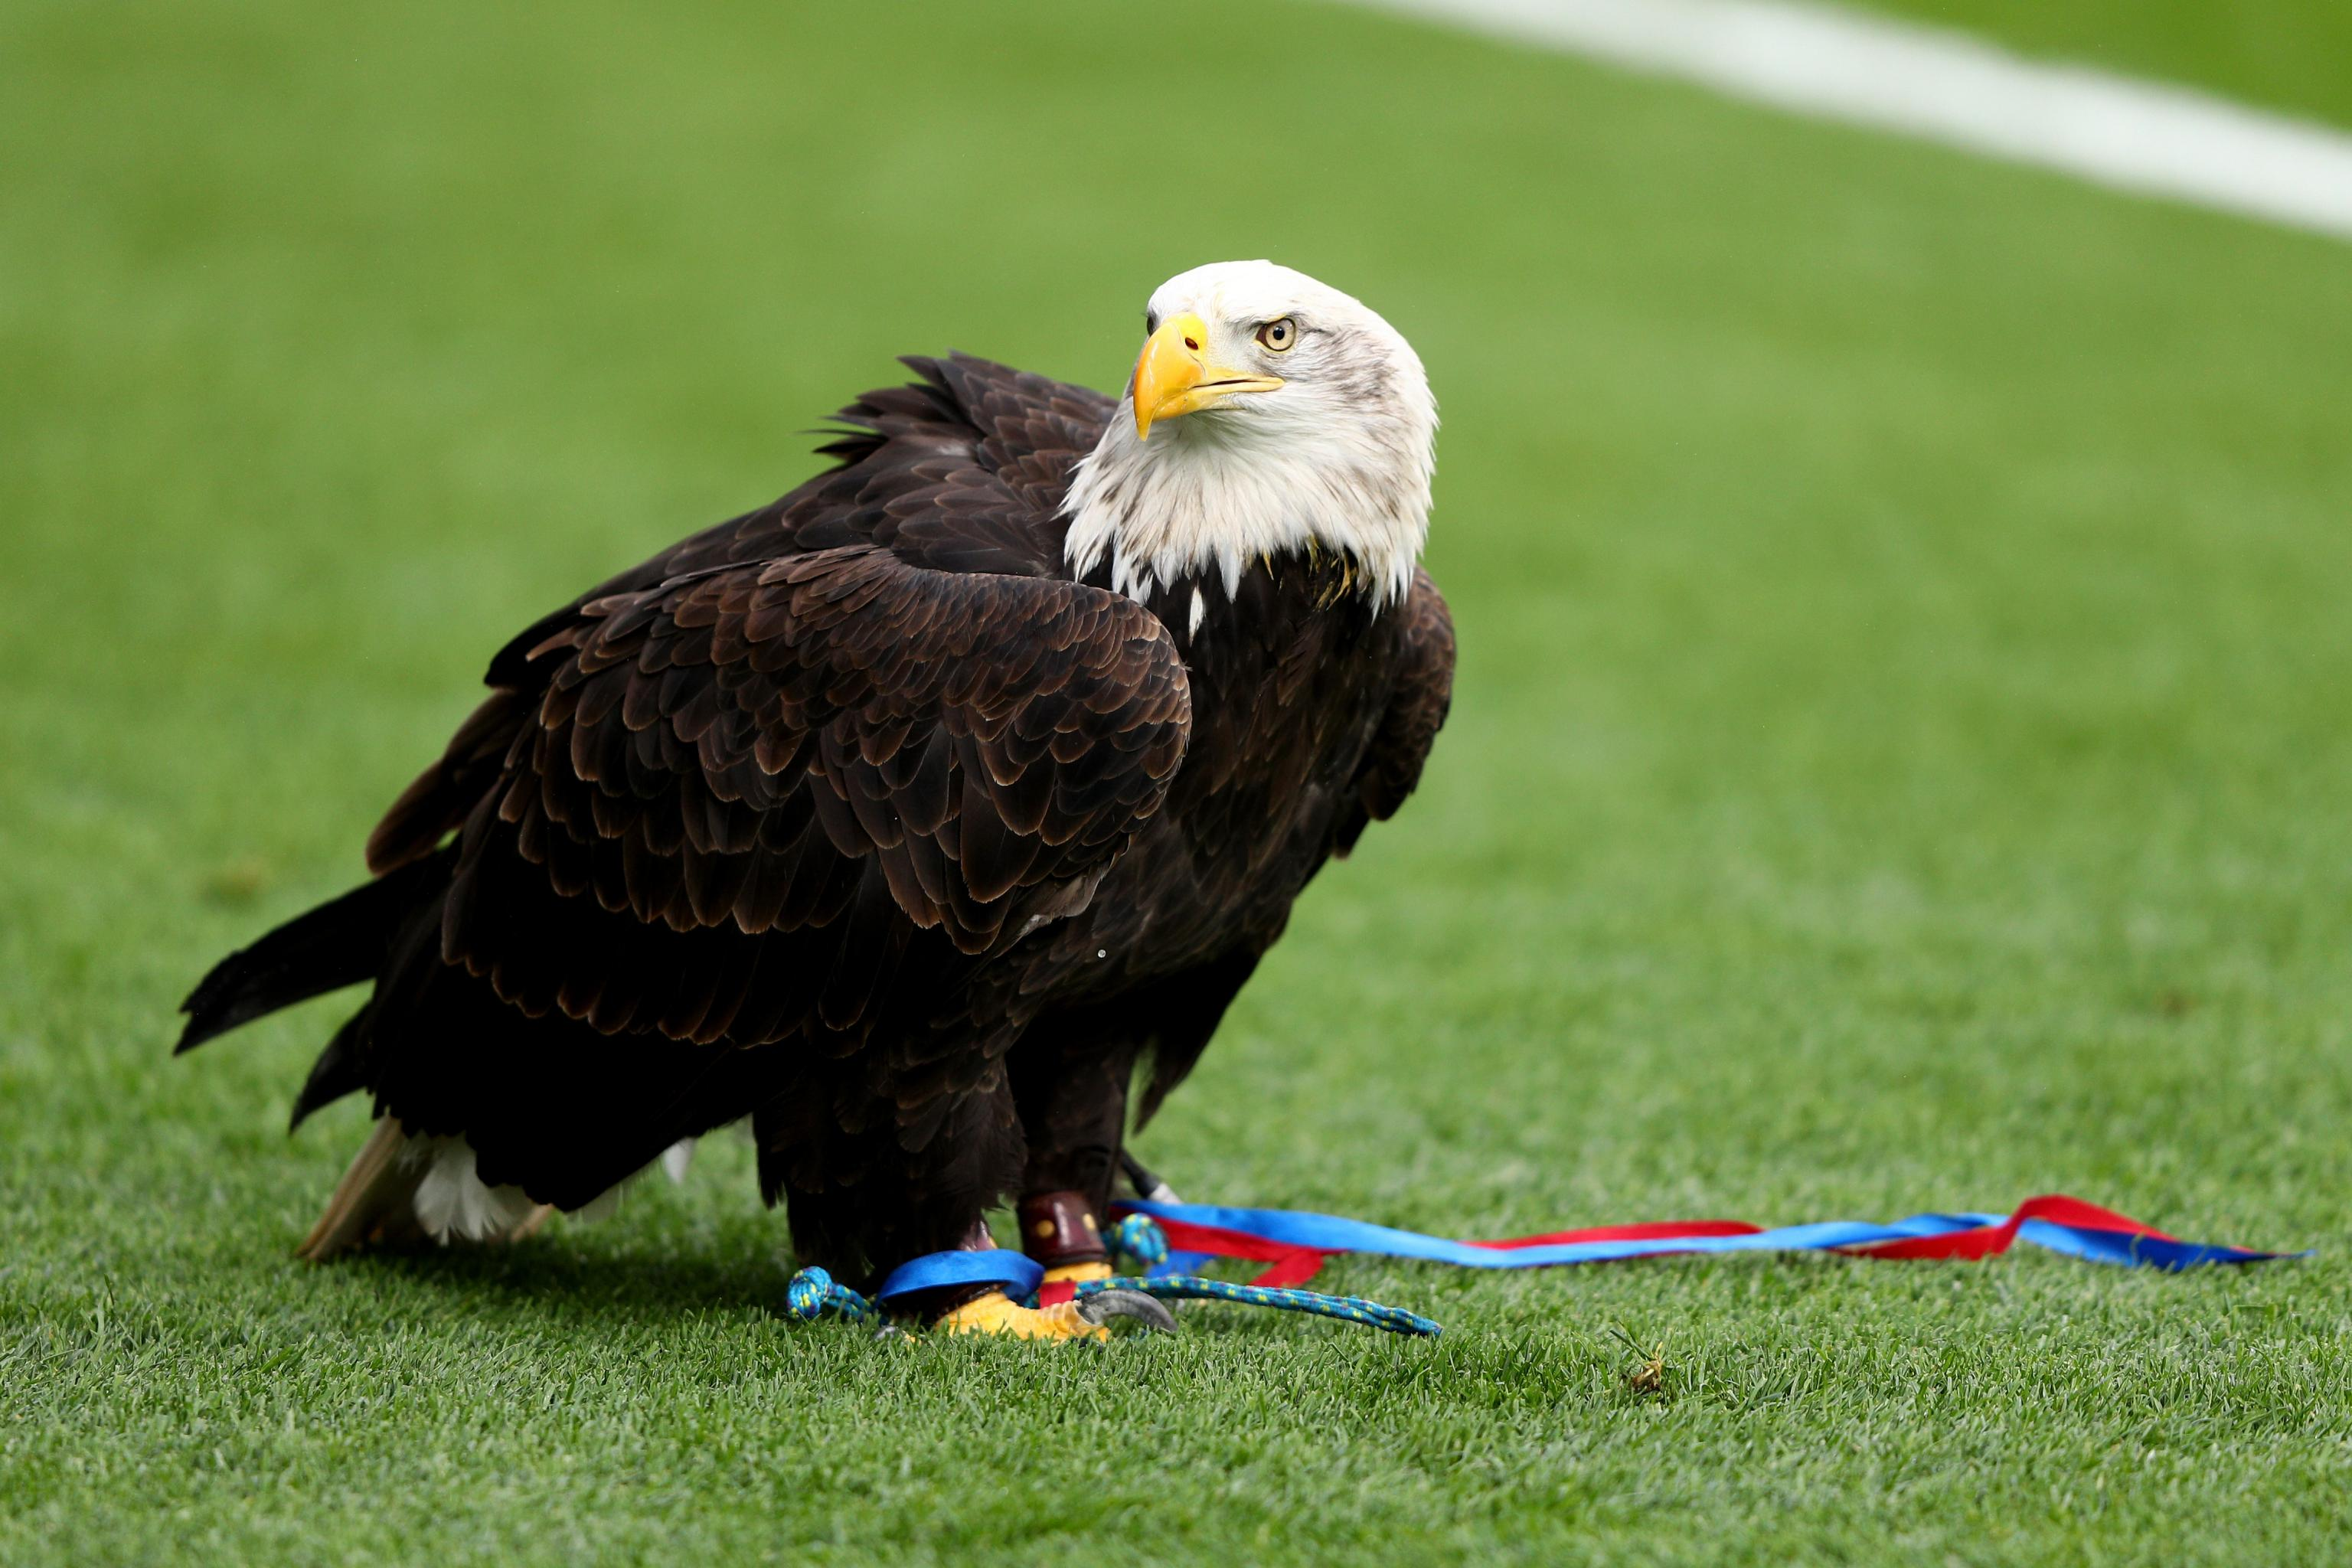 Charlton Athletic Fan Found Guilty of Attacking Crystal Palace39s Eagle  Mascot  Bleacher Report  Latest News Videos and Highlights